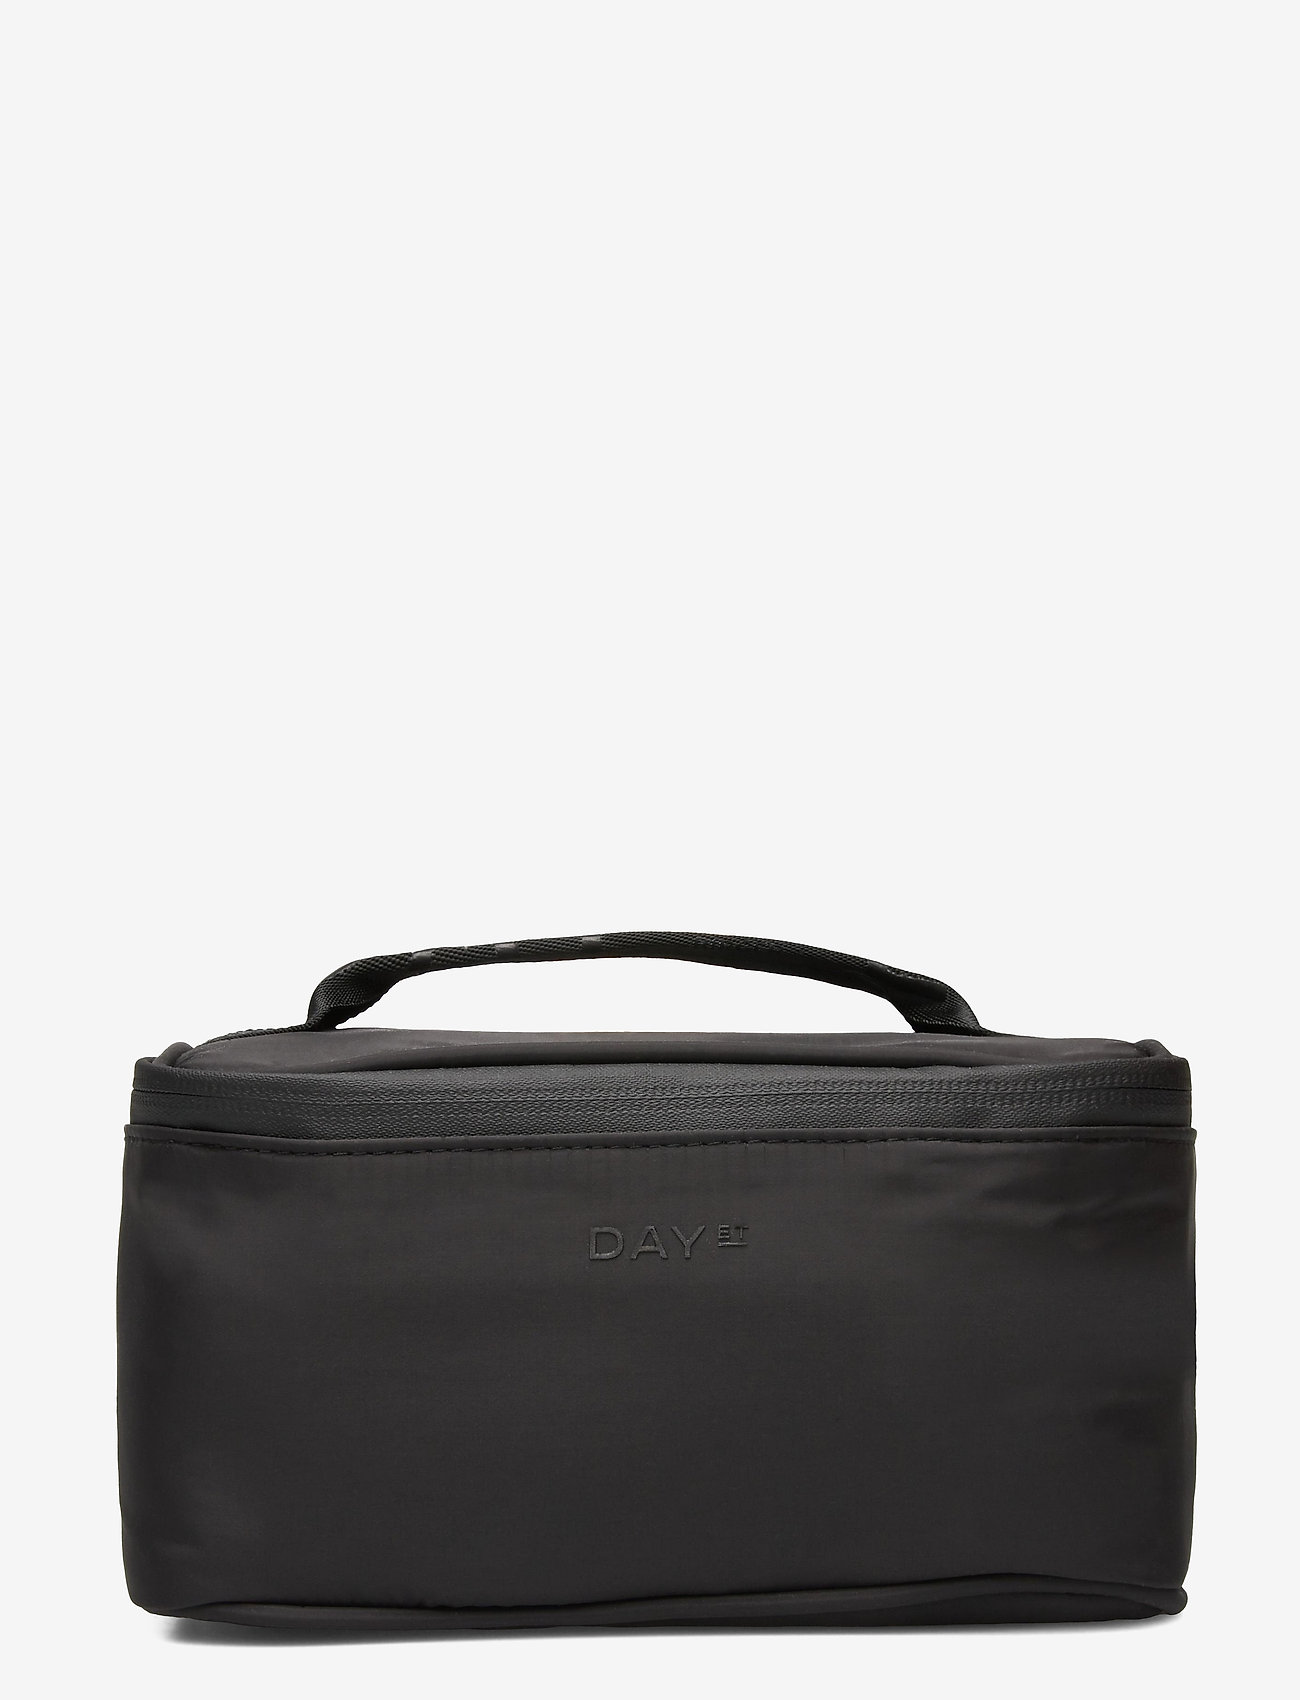 DAY et - Day RE-LB Sport Cosmetic - bags - black - 0